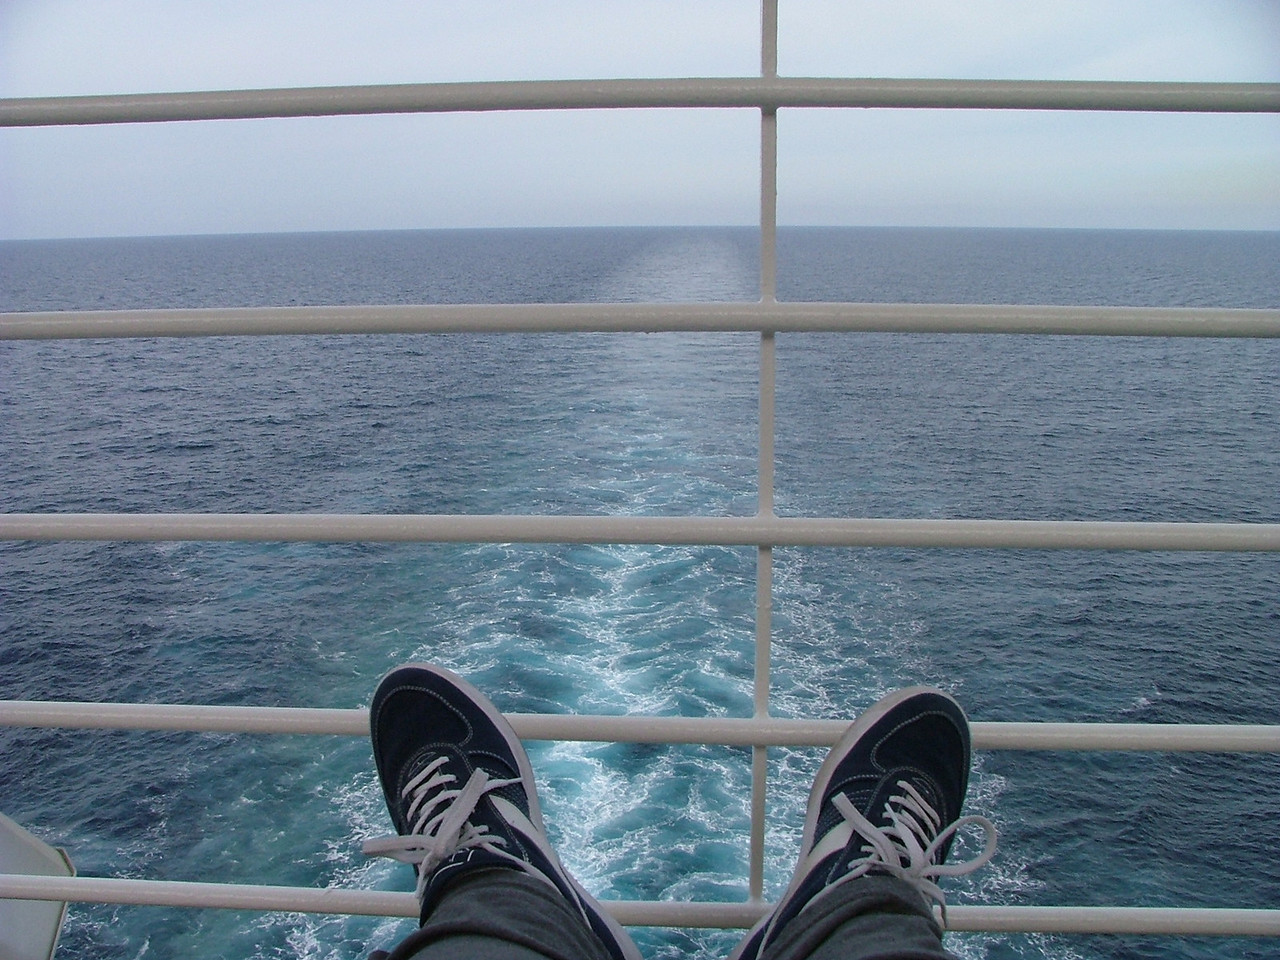 This was one of my favorite places, just chillin' on the back of the ship.